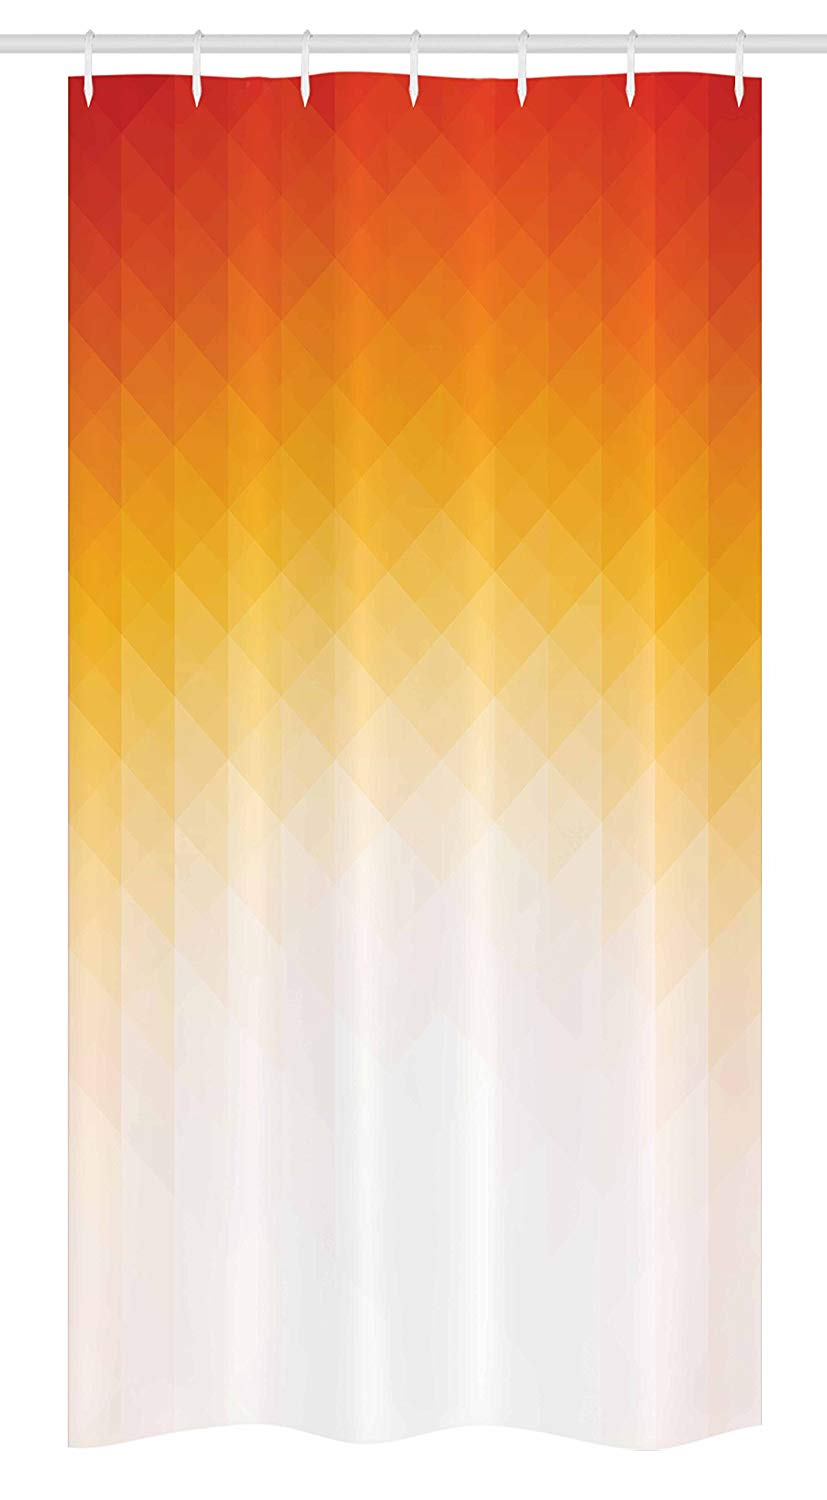 "Ambesonne Geometric Stall Shower Curtain, Ombre Geometric Triangle Shape by Digital Gradient Modern Retro Style, Fabric Bathroom Decor Set with Hooks, 36"" X 72"", Yellow Orange"